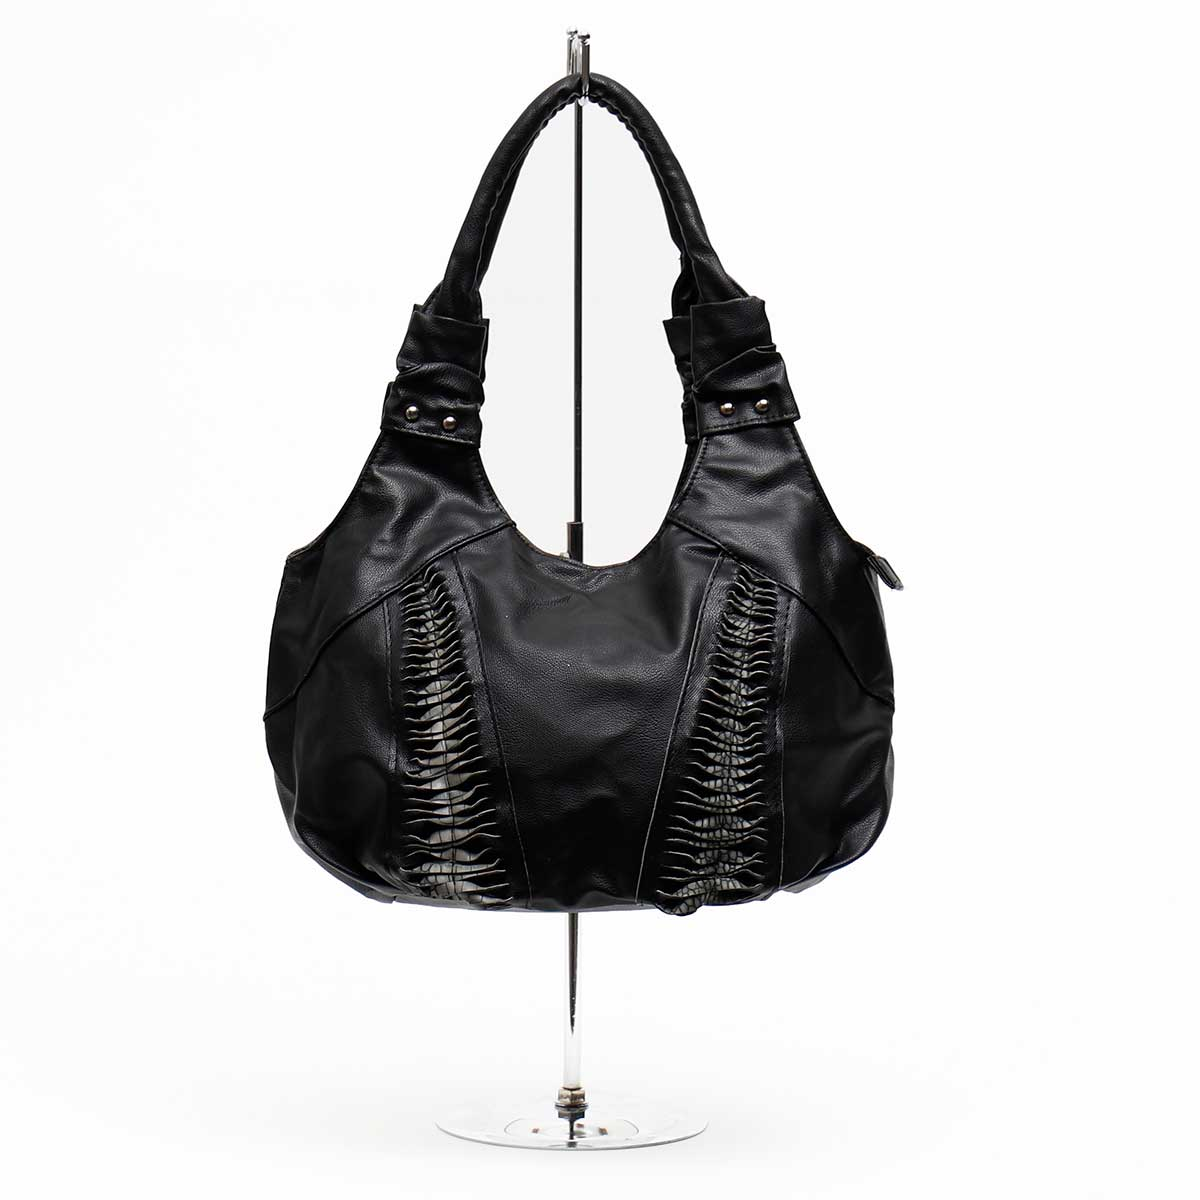 Dundee Bag with Double Twill Black with Gray Crocodile *70sp